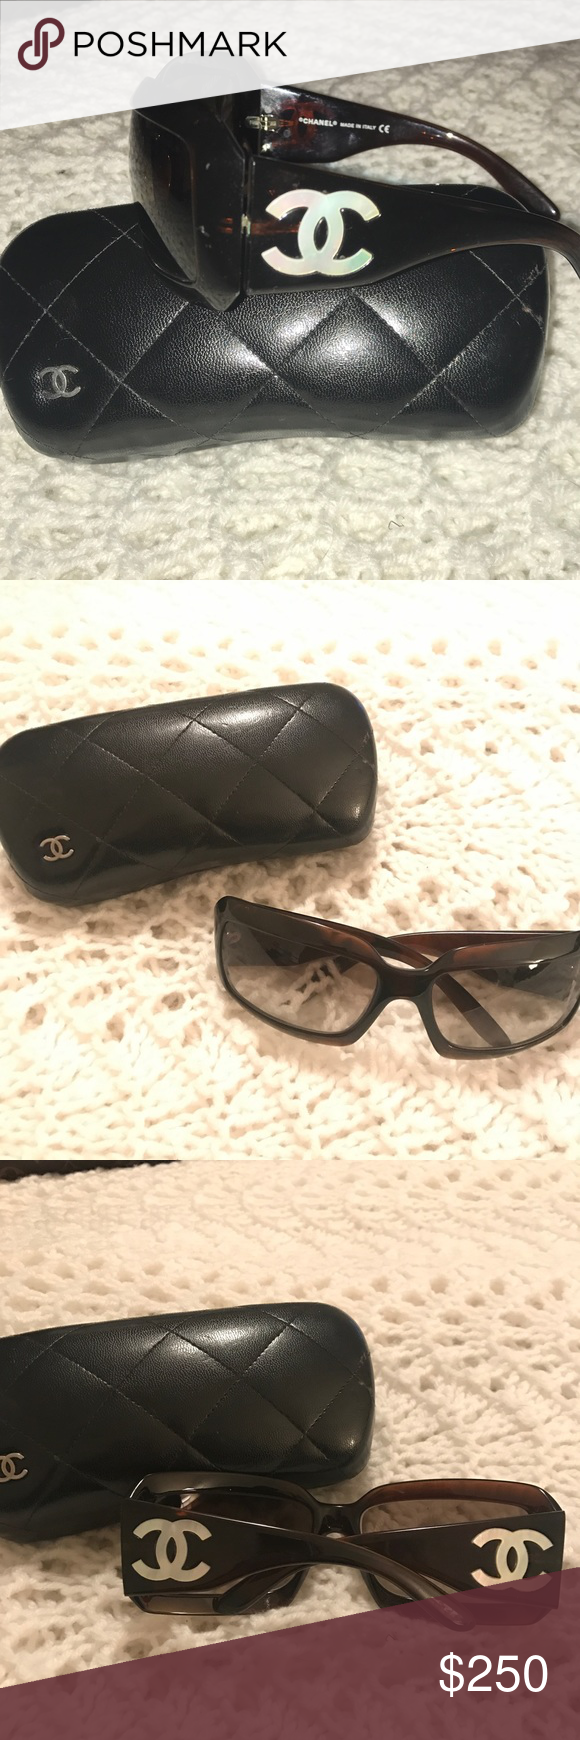 58b5d91b8d95 Chanel Mother of Pearl CC Tortoise Shell Sunglasse 100% Authentic Excellent  Condition Gently Used CHANEL Women s Tortoise Shell Sunglasses with Mother  of ...